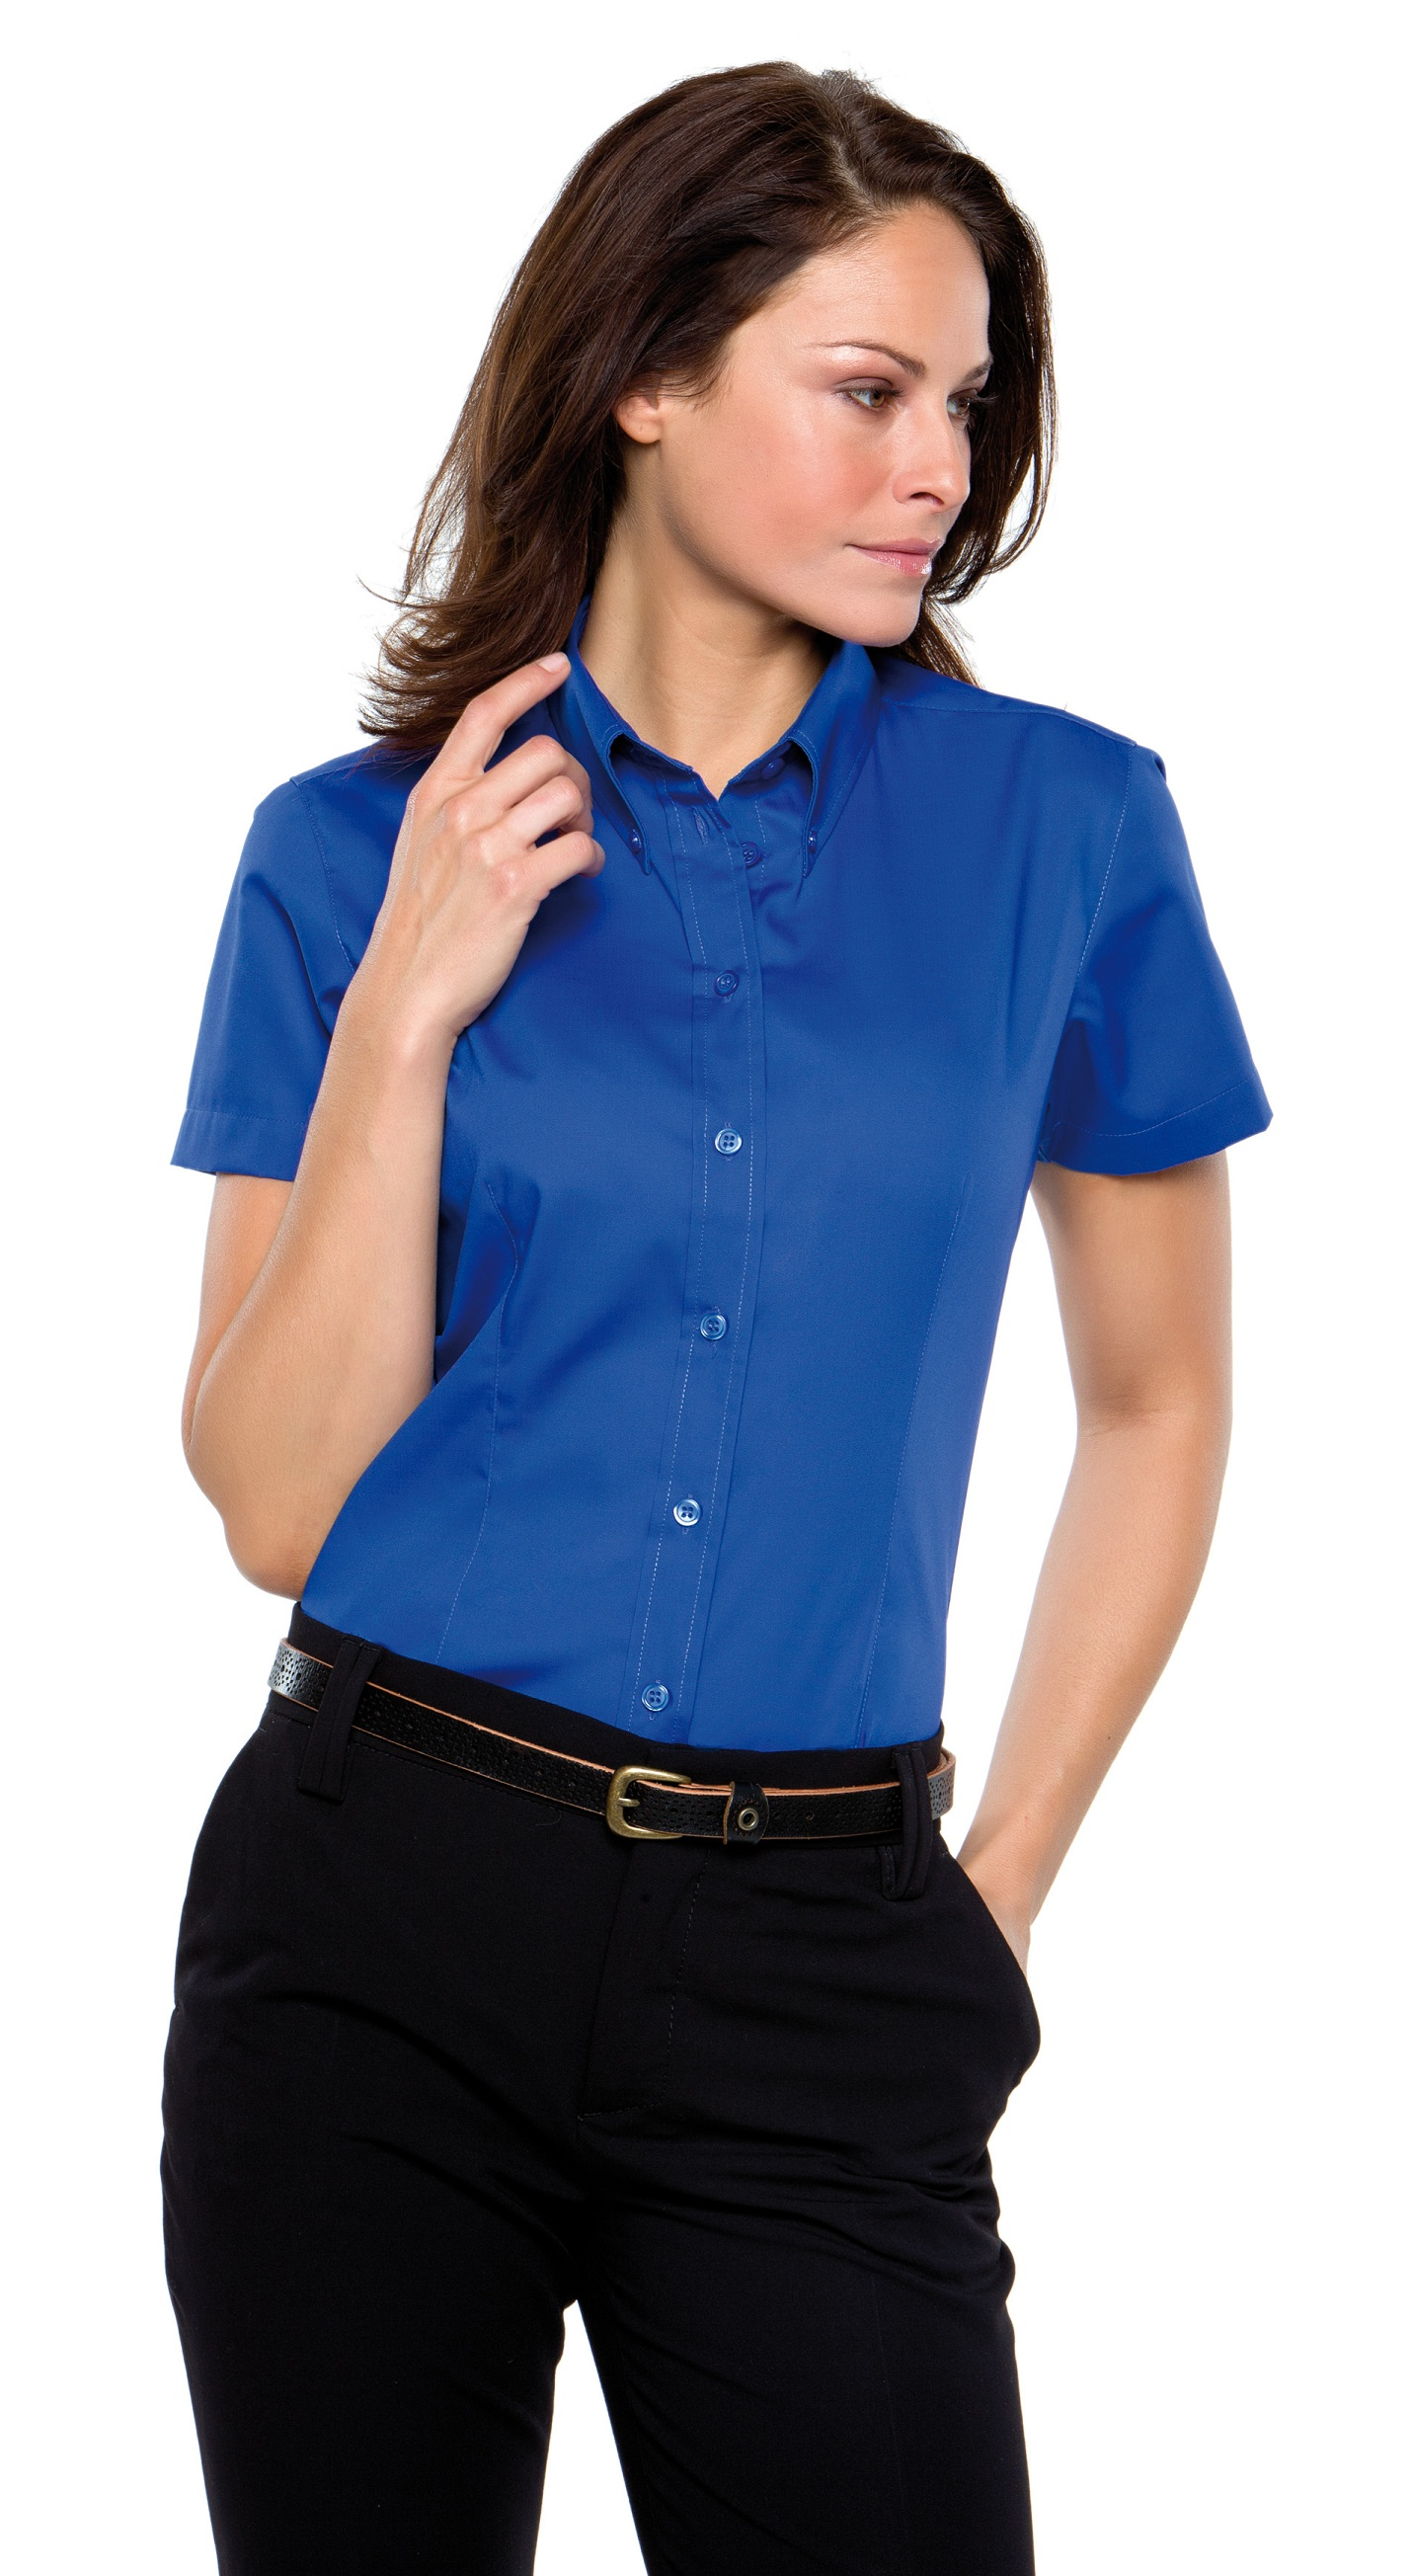 d25d38b15 KK701 Kustom Kit Womens Oxford Shirt Short Sleeve-G.S.Mahal & Co ...